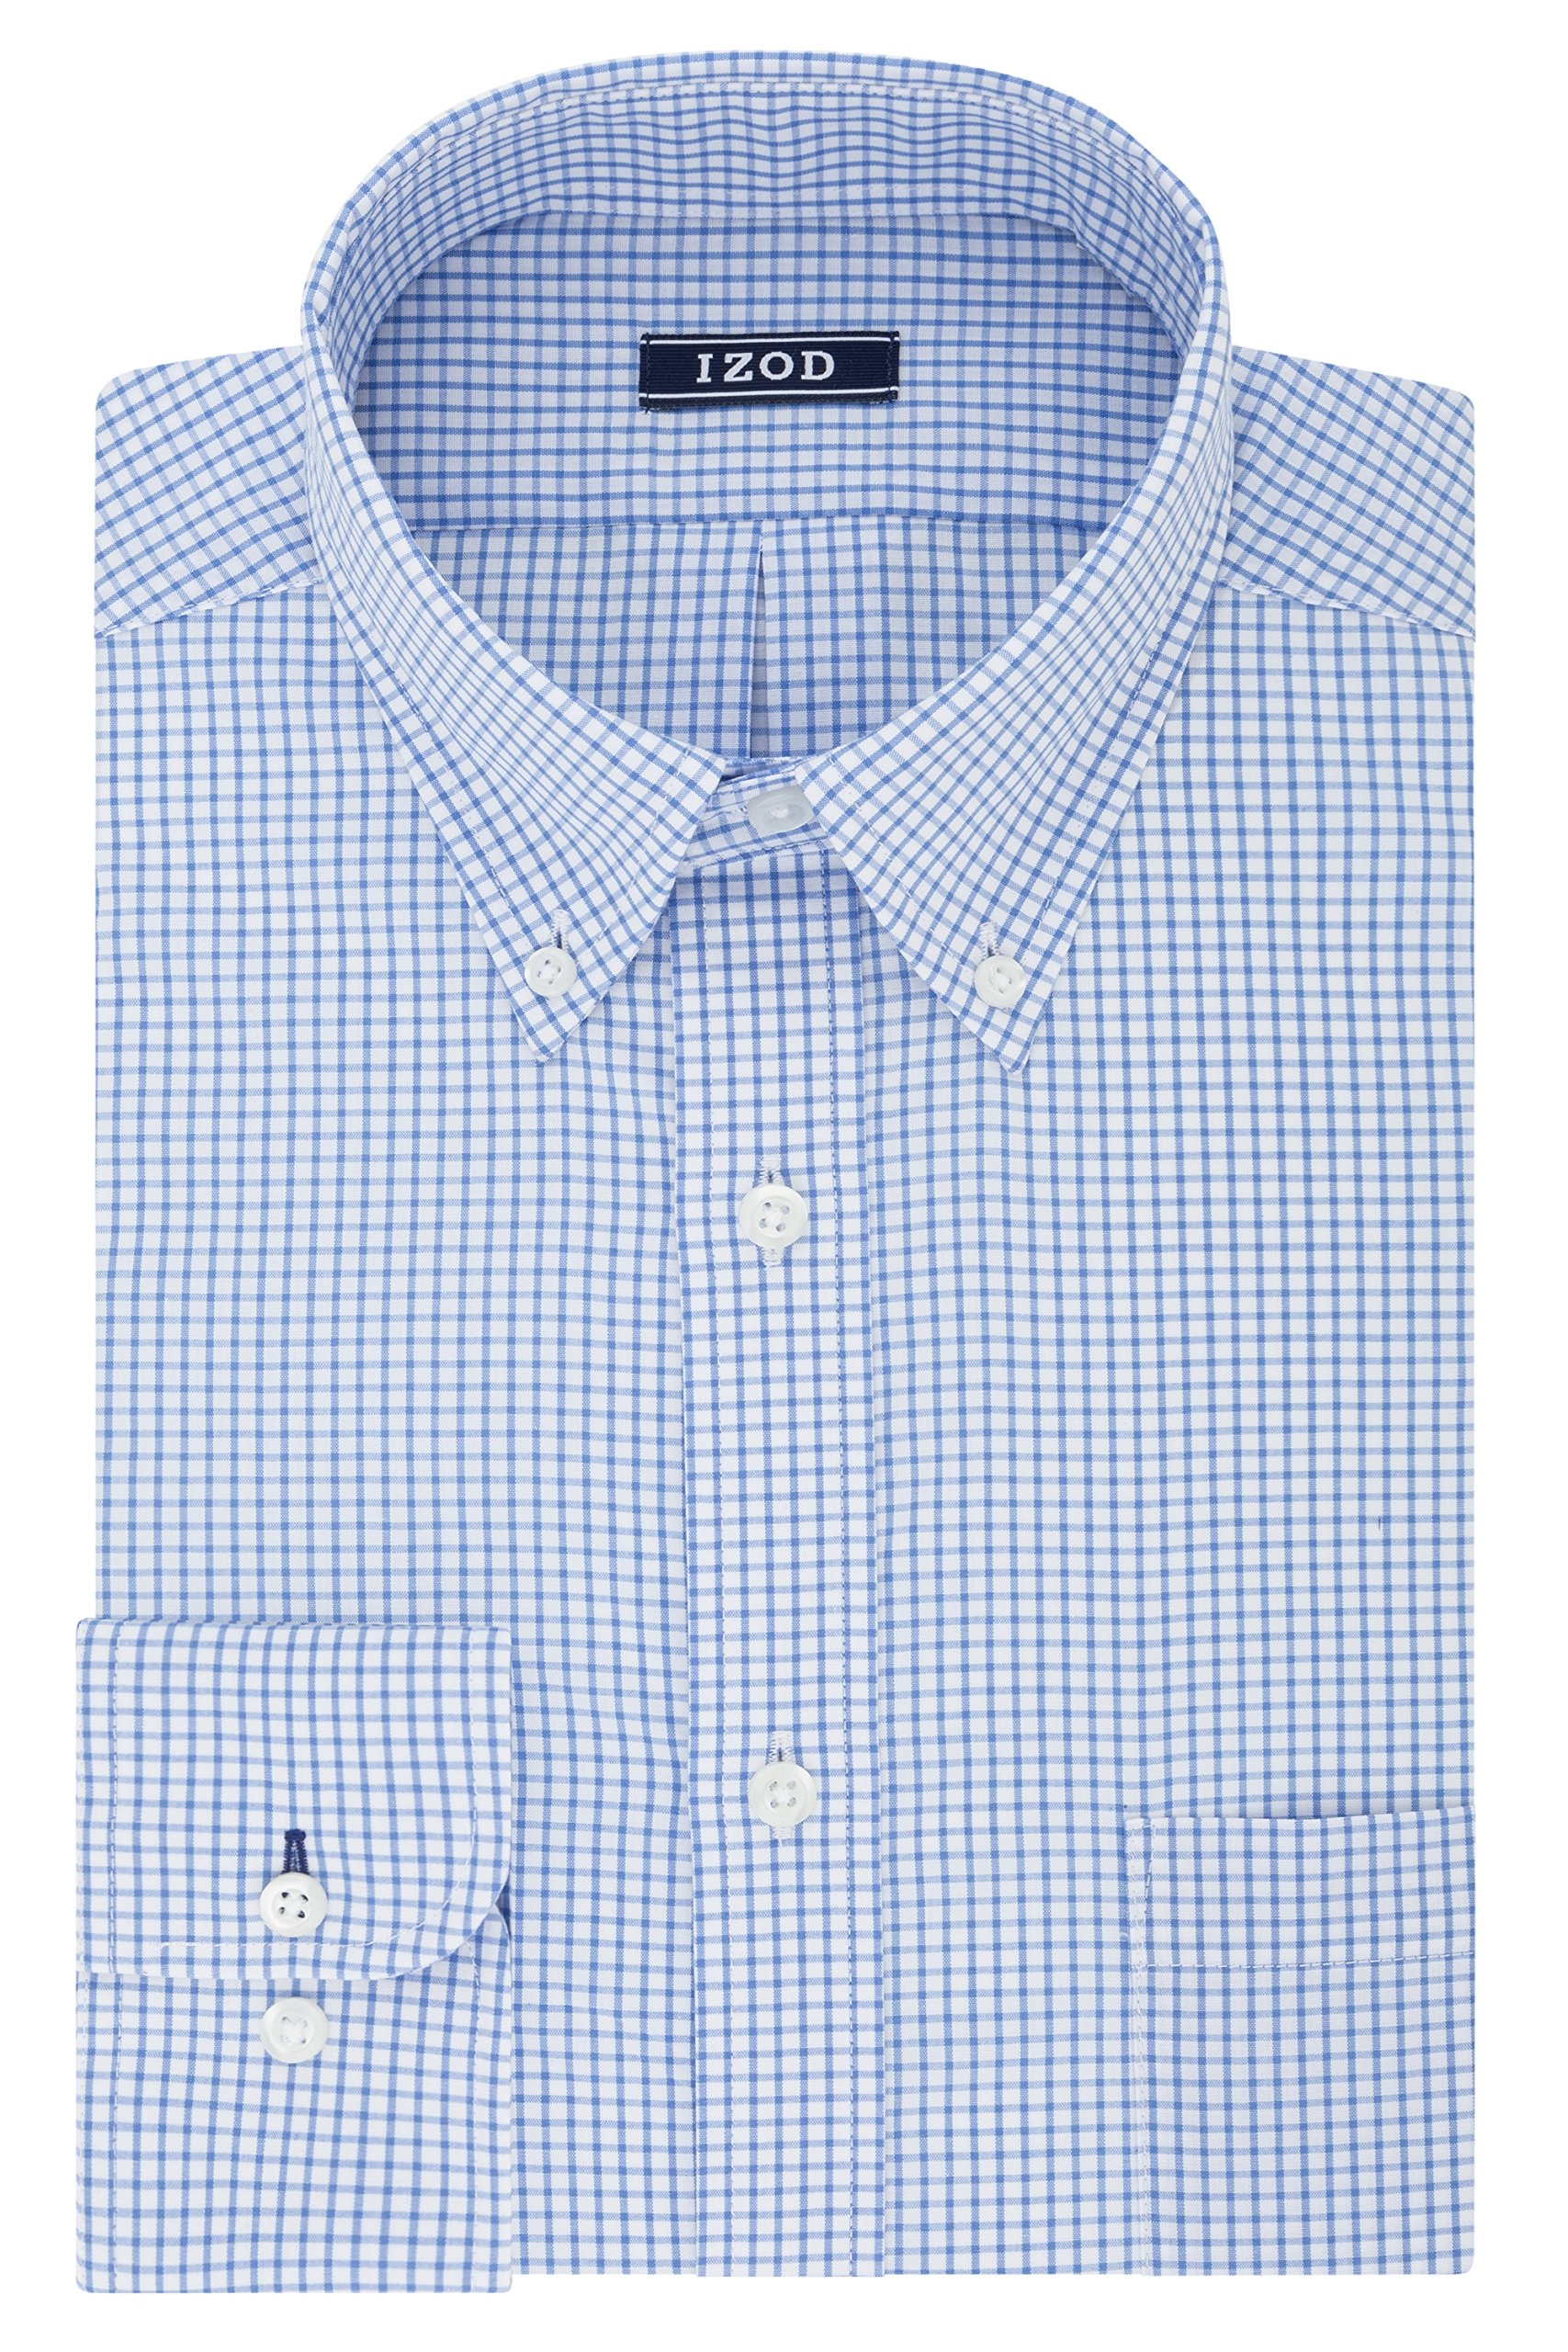 IZOD Men's Big and Tall Dress Shirts Stretch Check Fit, Blue, 18.5'' Neck 35-36'' Sleeve